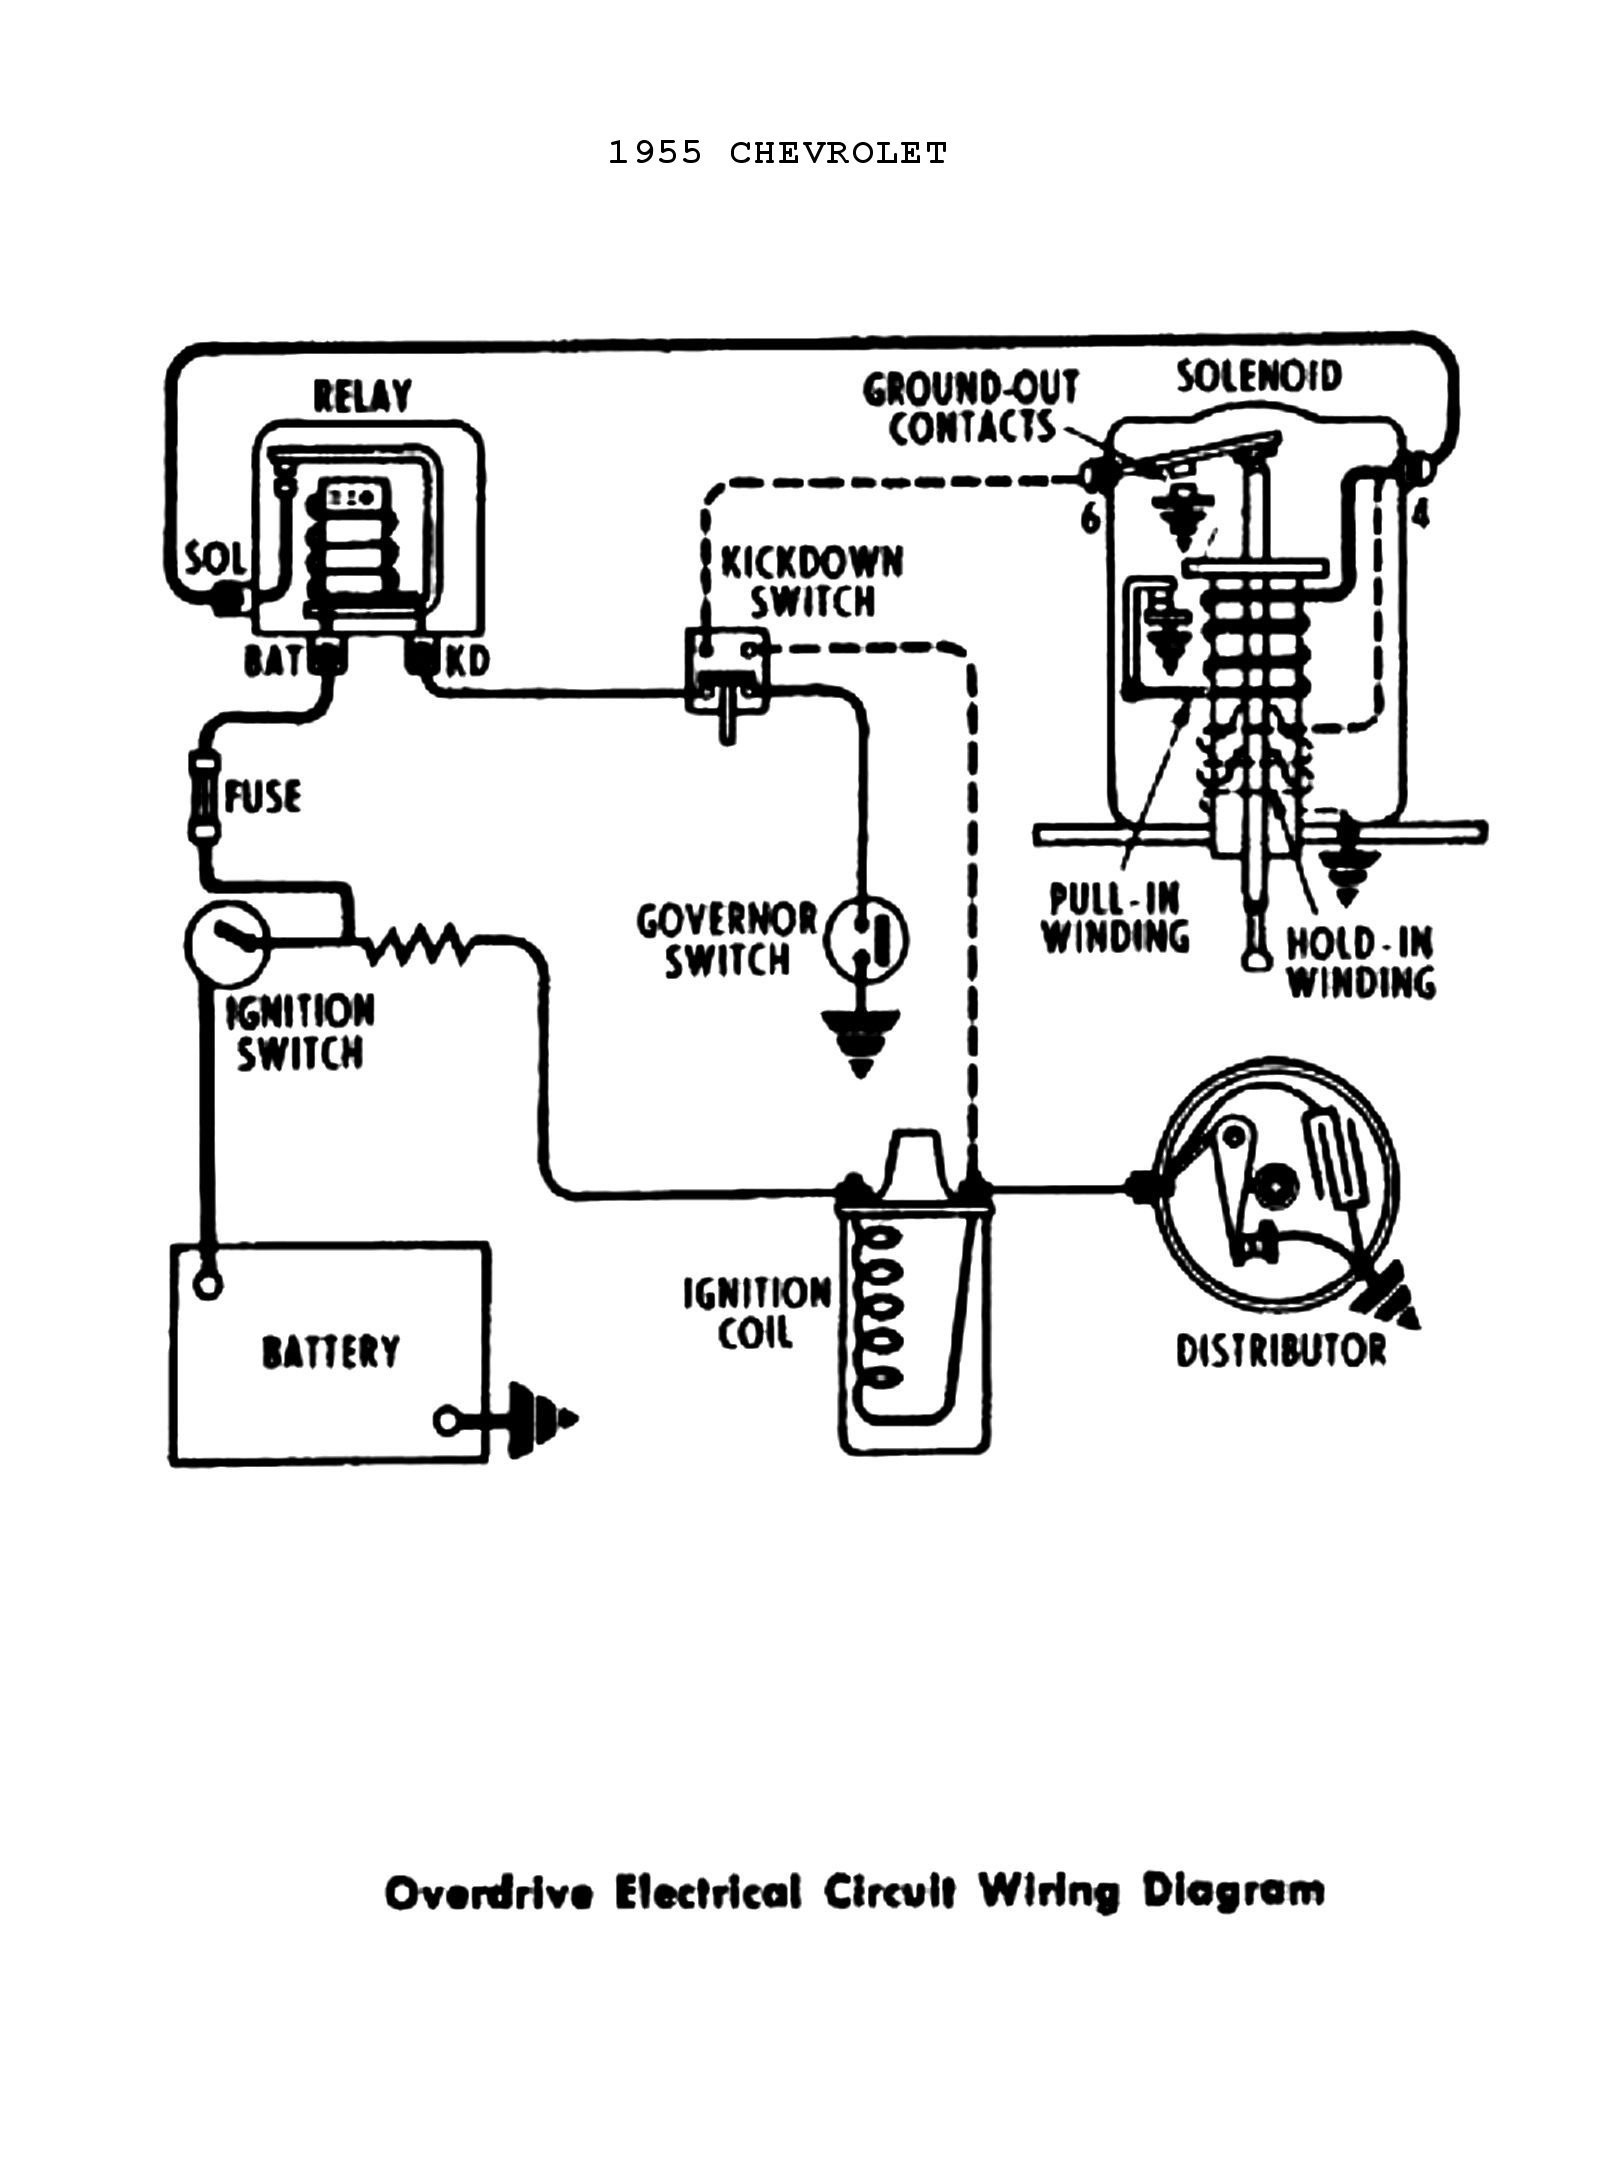 Gm Alternator Wire Schematic - Wiring Schematics on